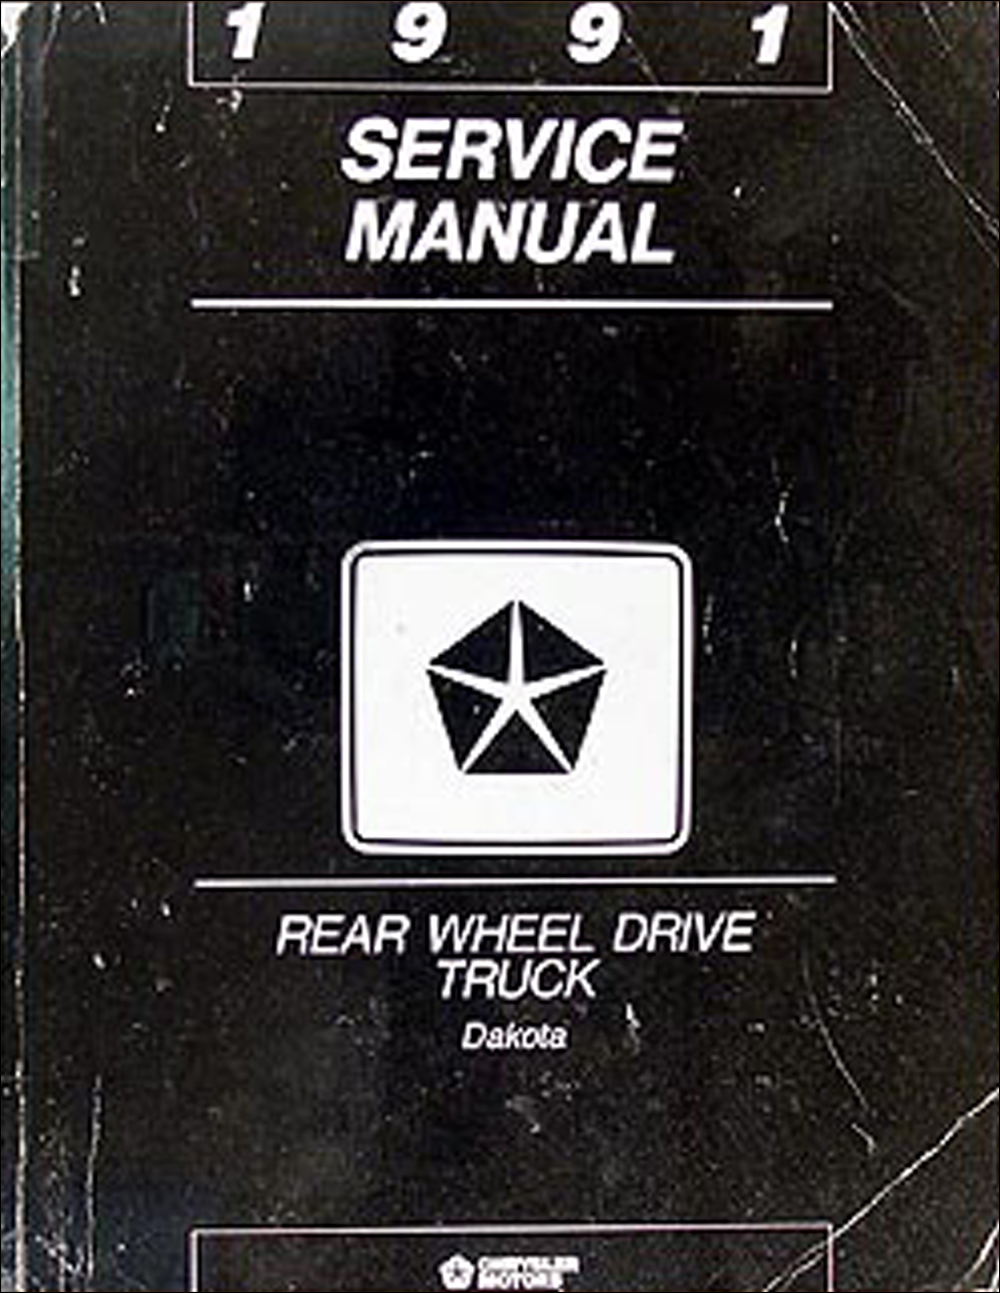 1991 Dodge Dakota Repair Manual Original